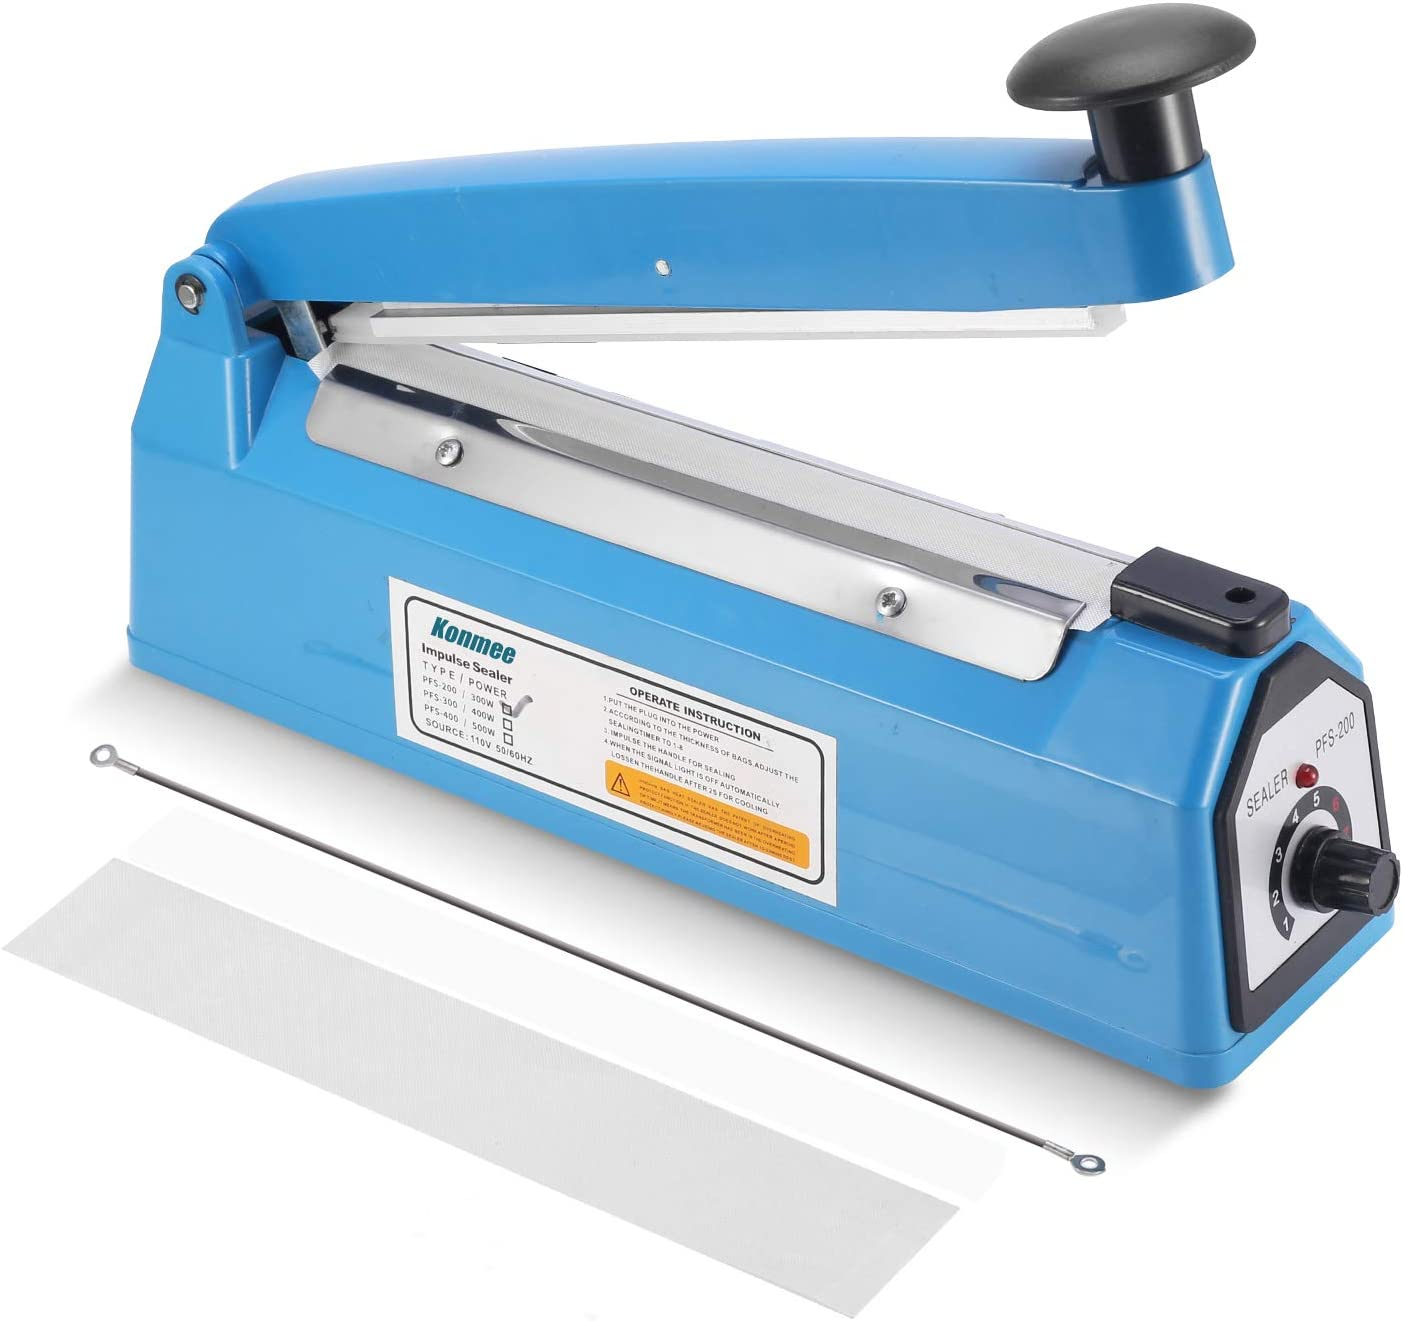 Konmee 8 Inches Impulse Commercial Bag Sealers Heat Sealing Machine for Mylar Cereal Plastics Polythene Bags with One Repair Kit